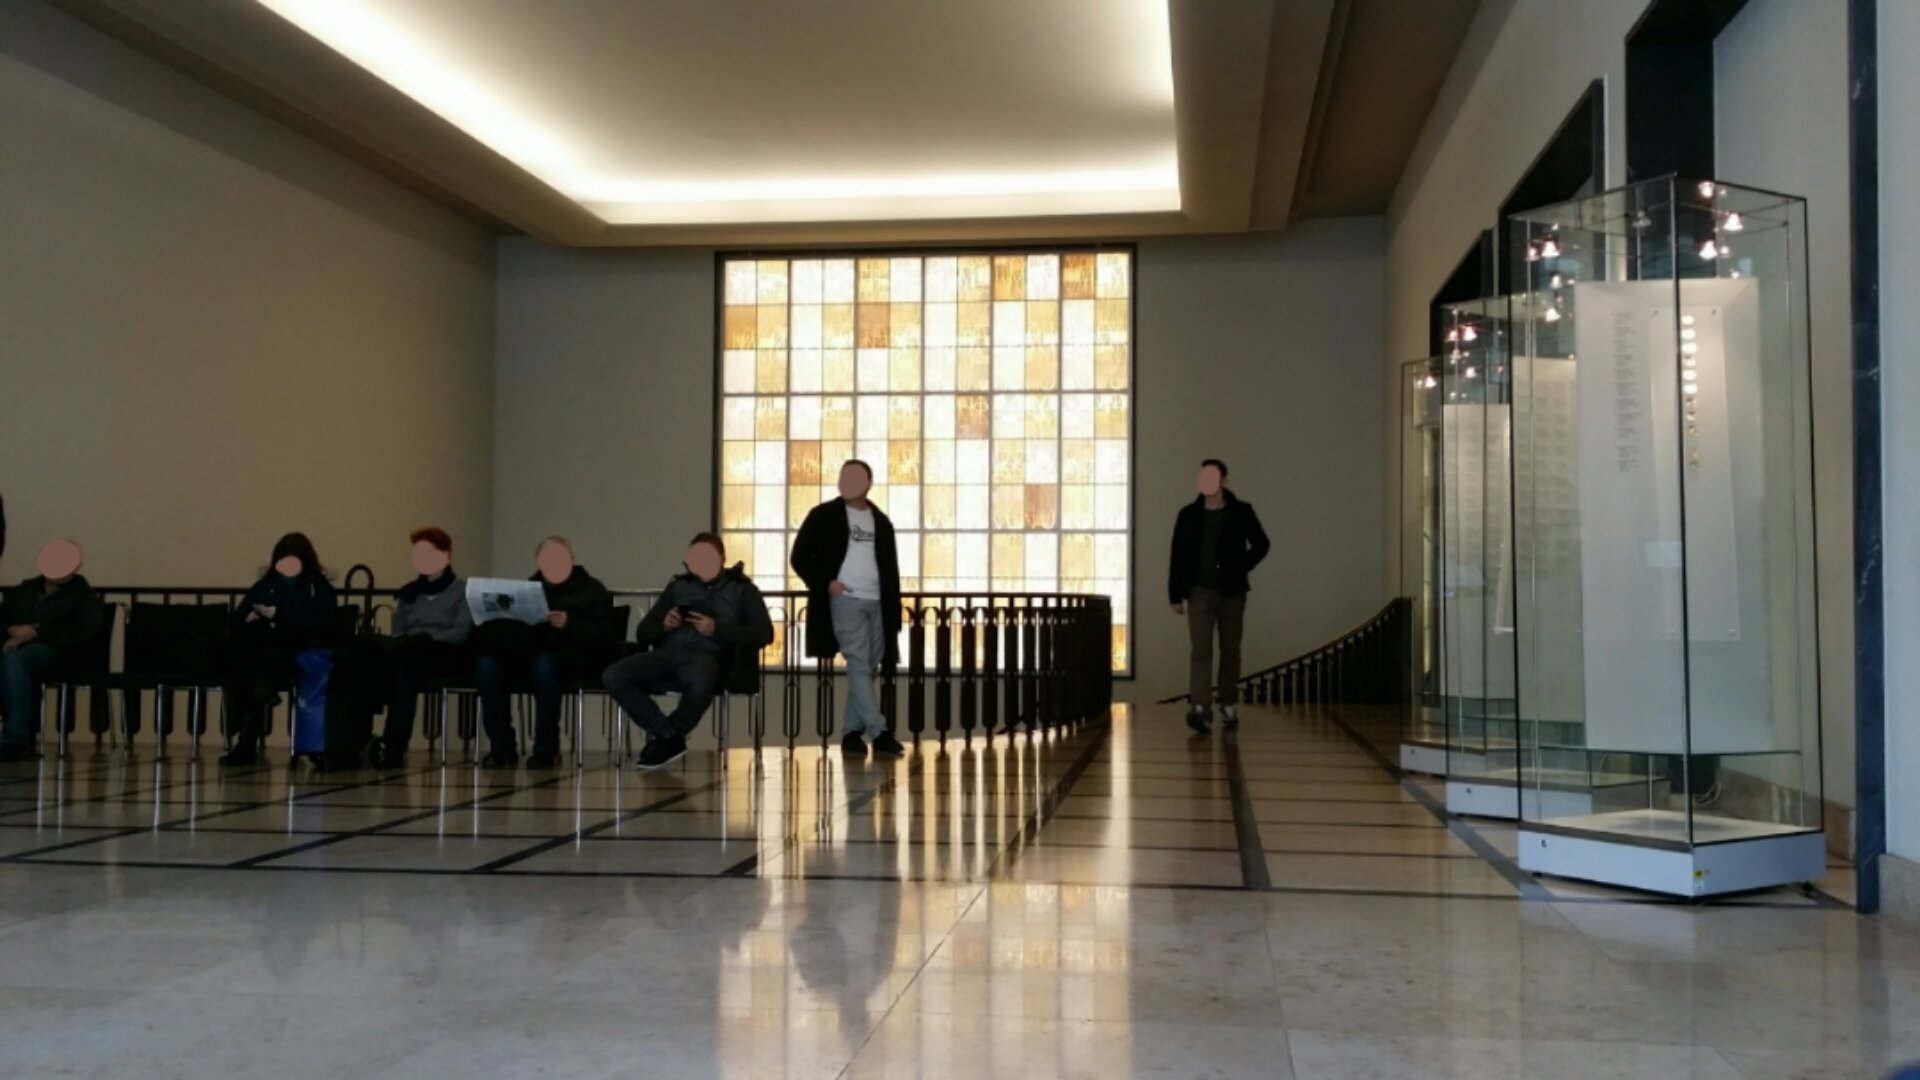 bundesbank berlin waiting room